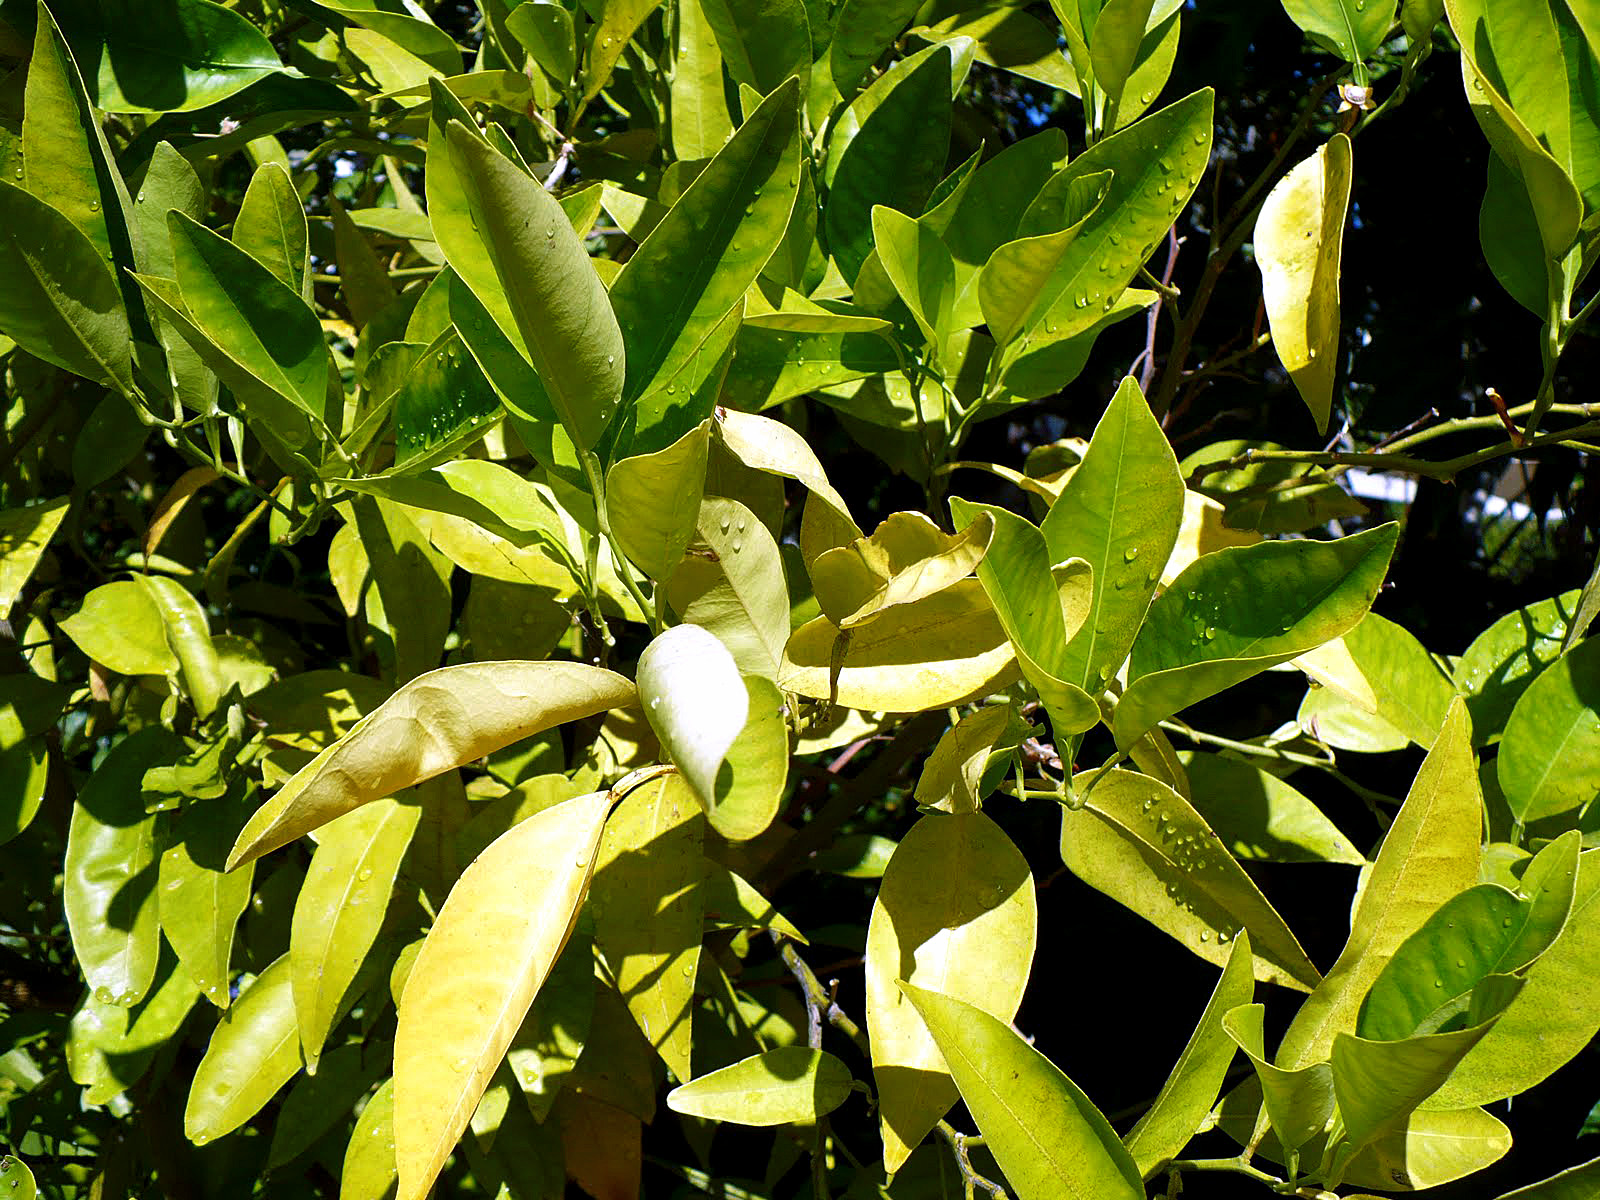 8Reasons your plant leaves turning yellow | why leaves turning yellow